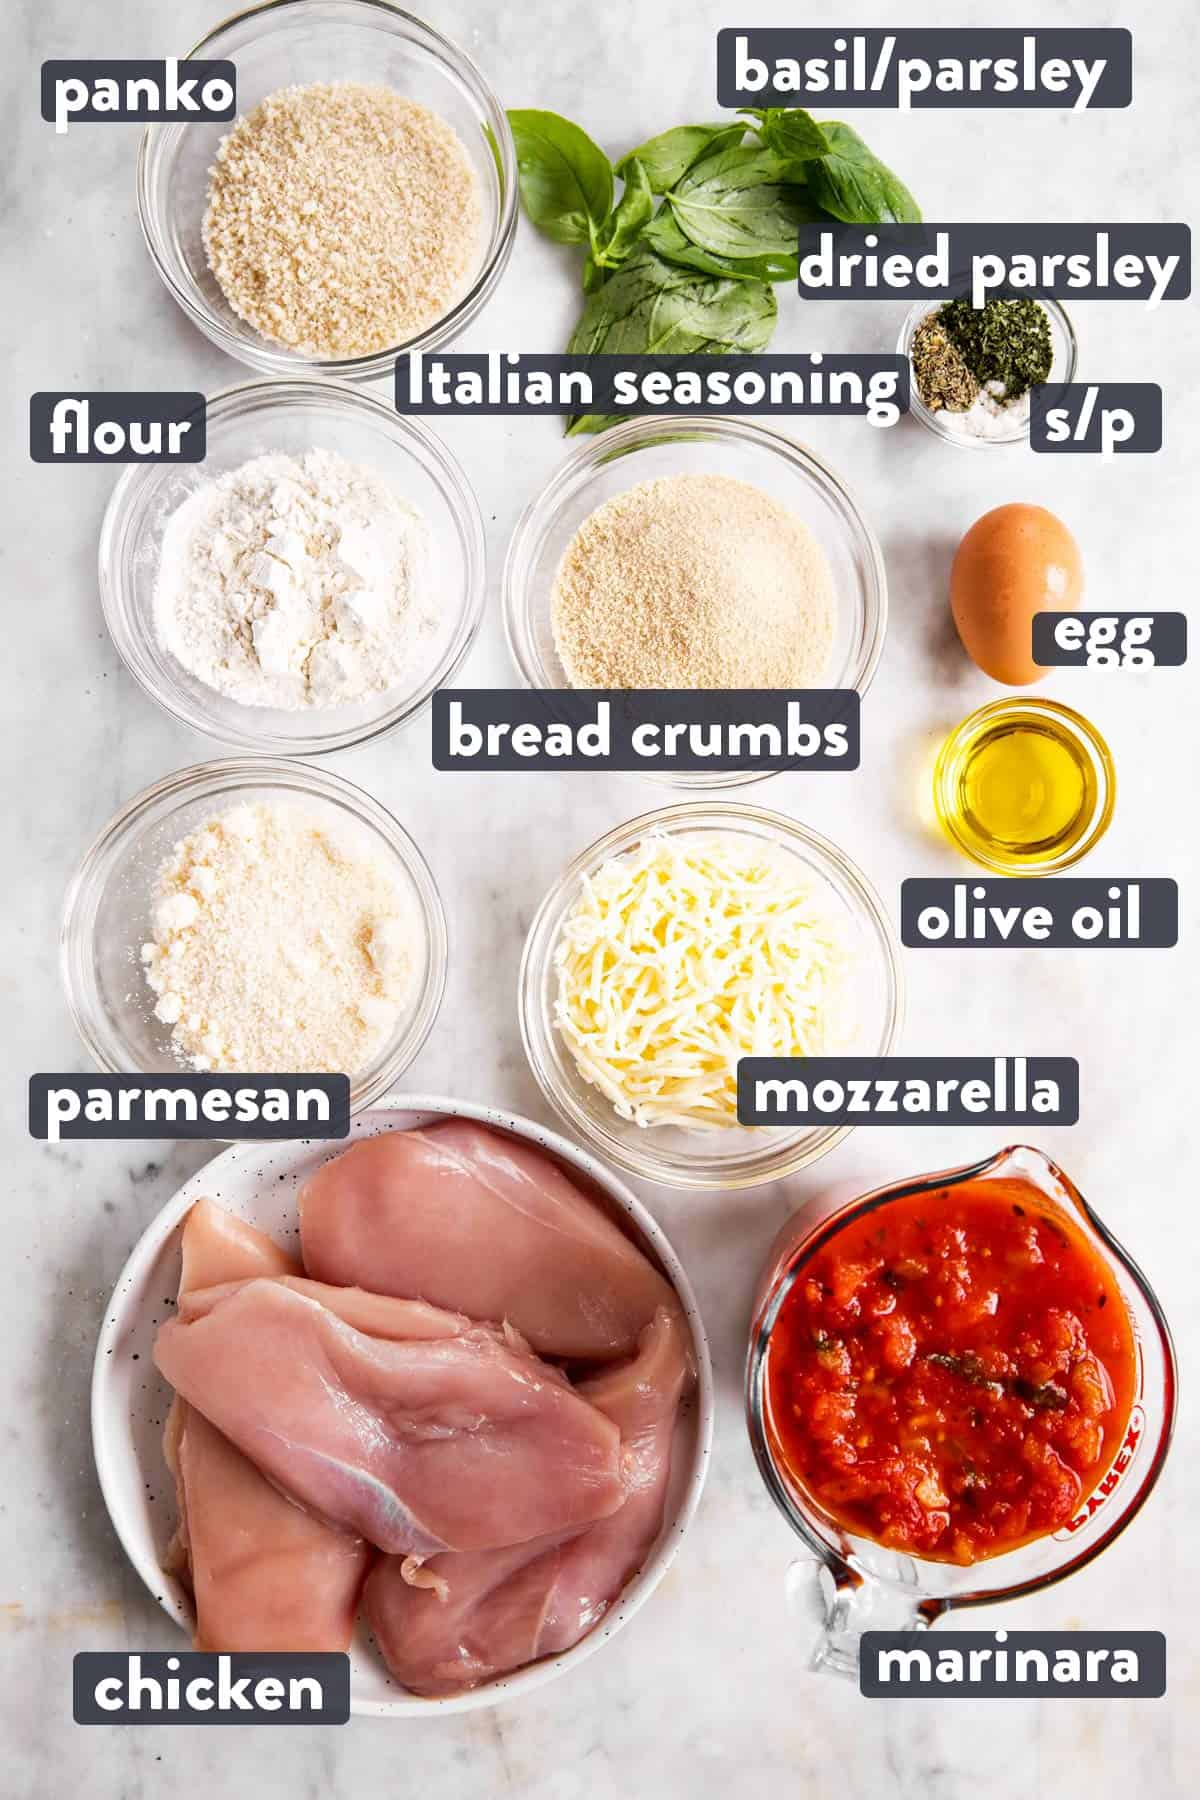 ingredients for chicken parmesan with text labels